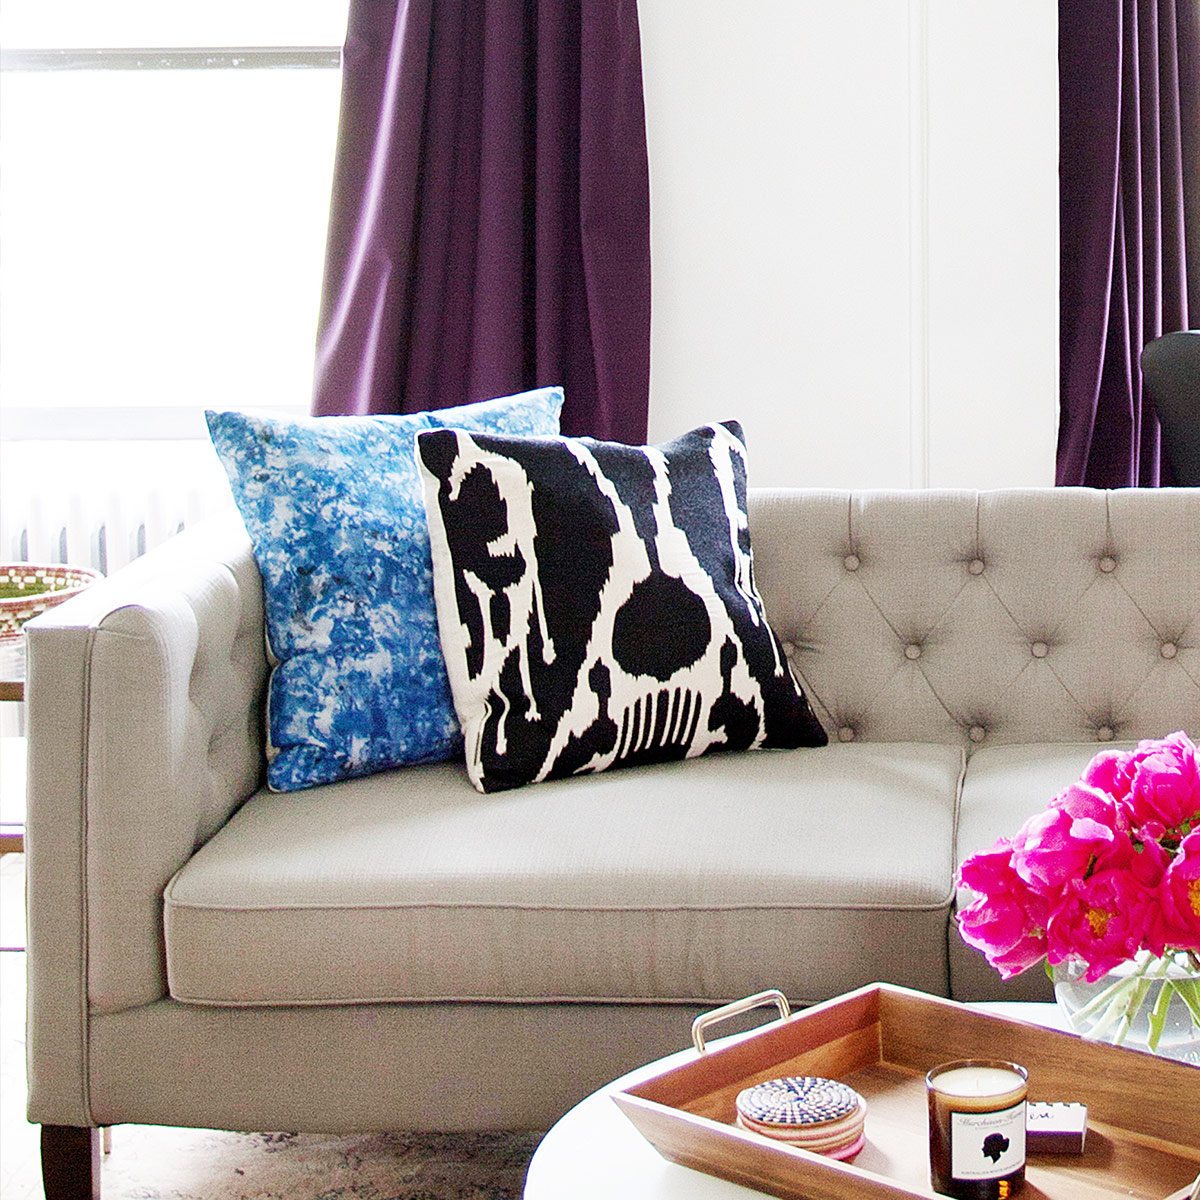 brightly colored pillows on a neutral couch